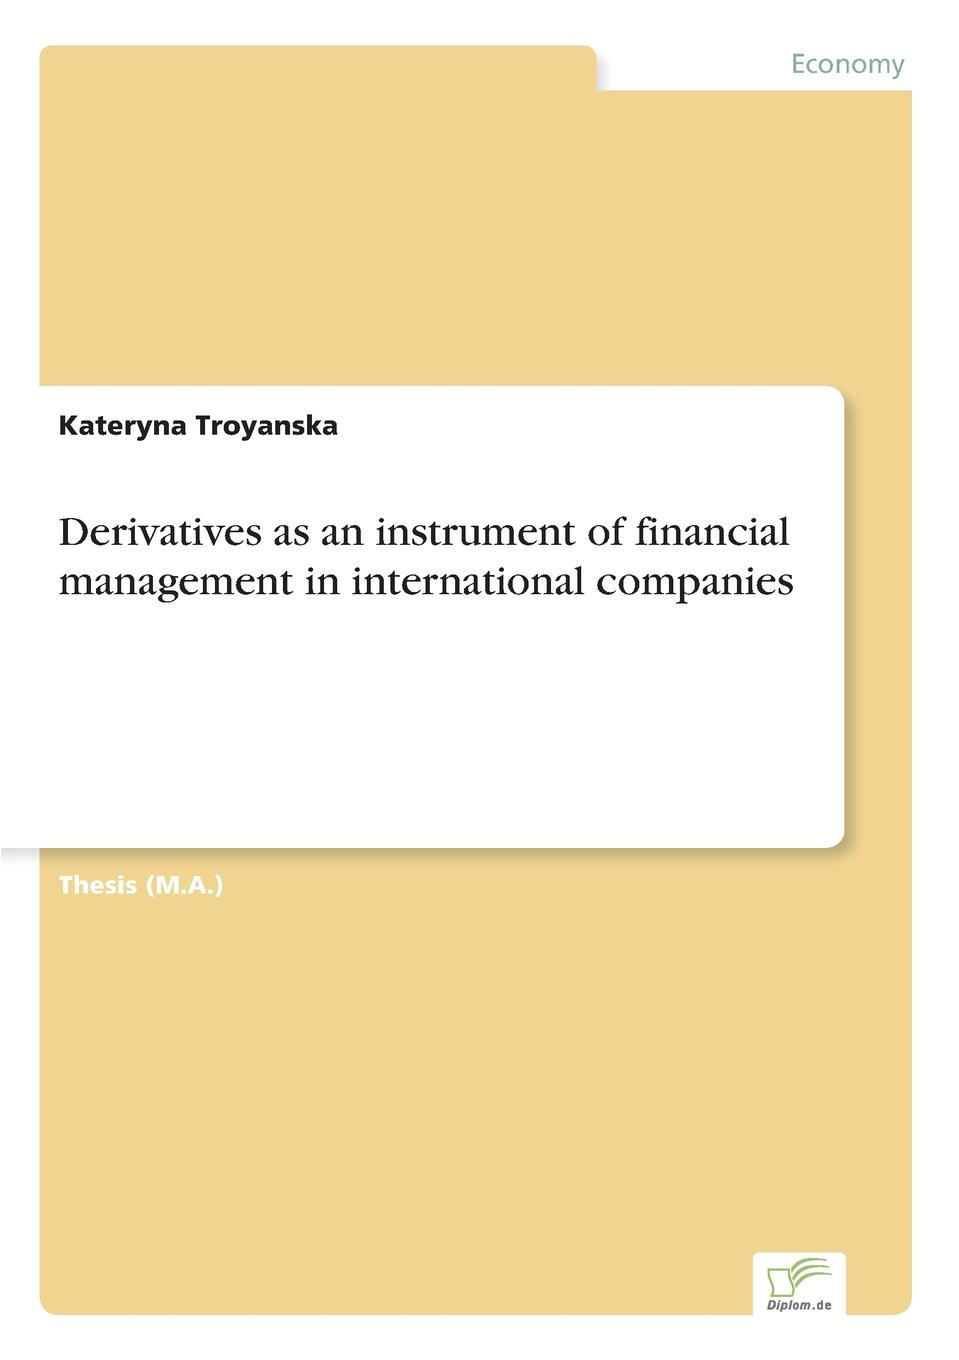 Kateryna Troyanska Derivatives as an instrument of financial management in international companies lewycka m a short history of tractors in ukrainian